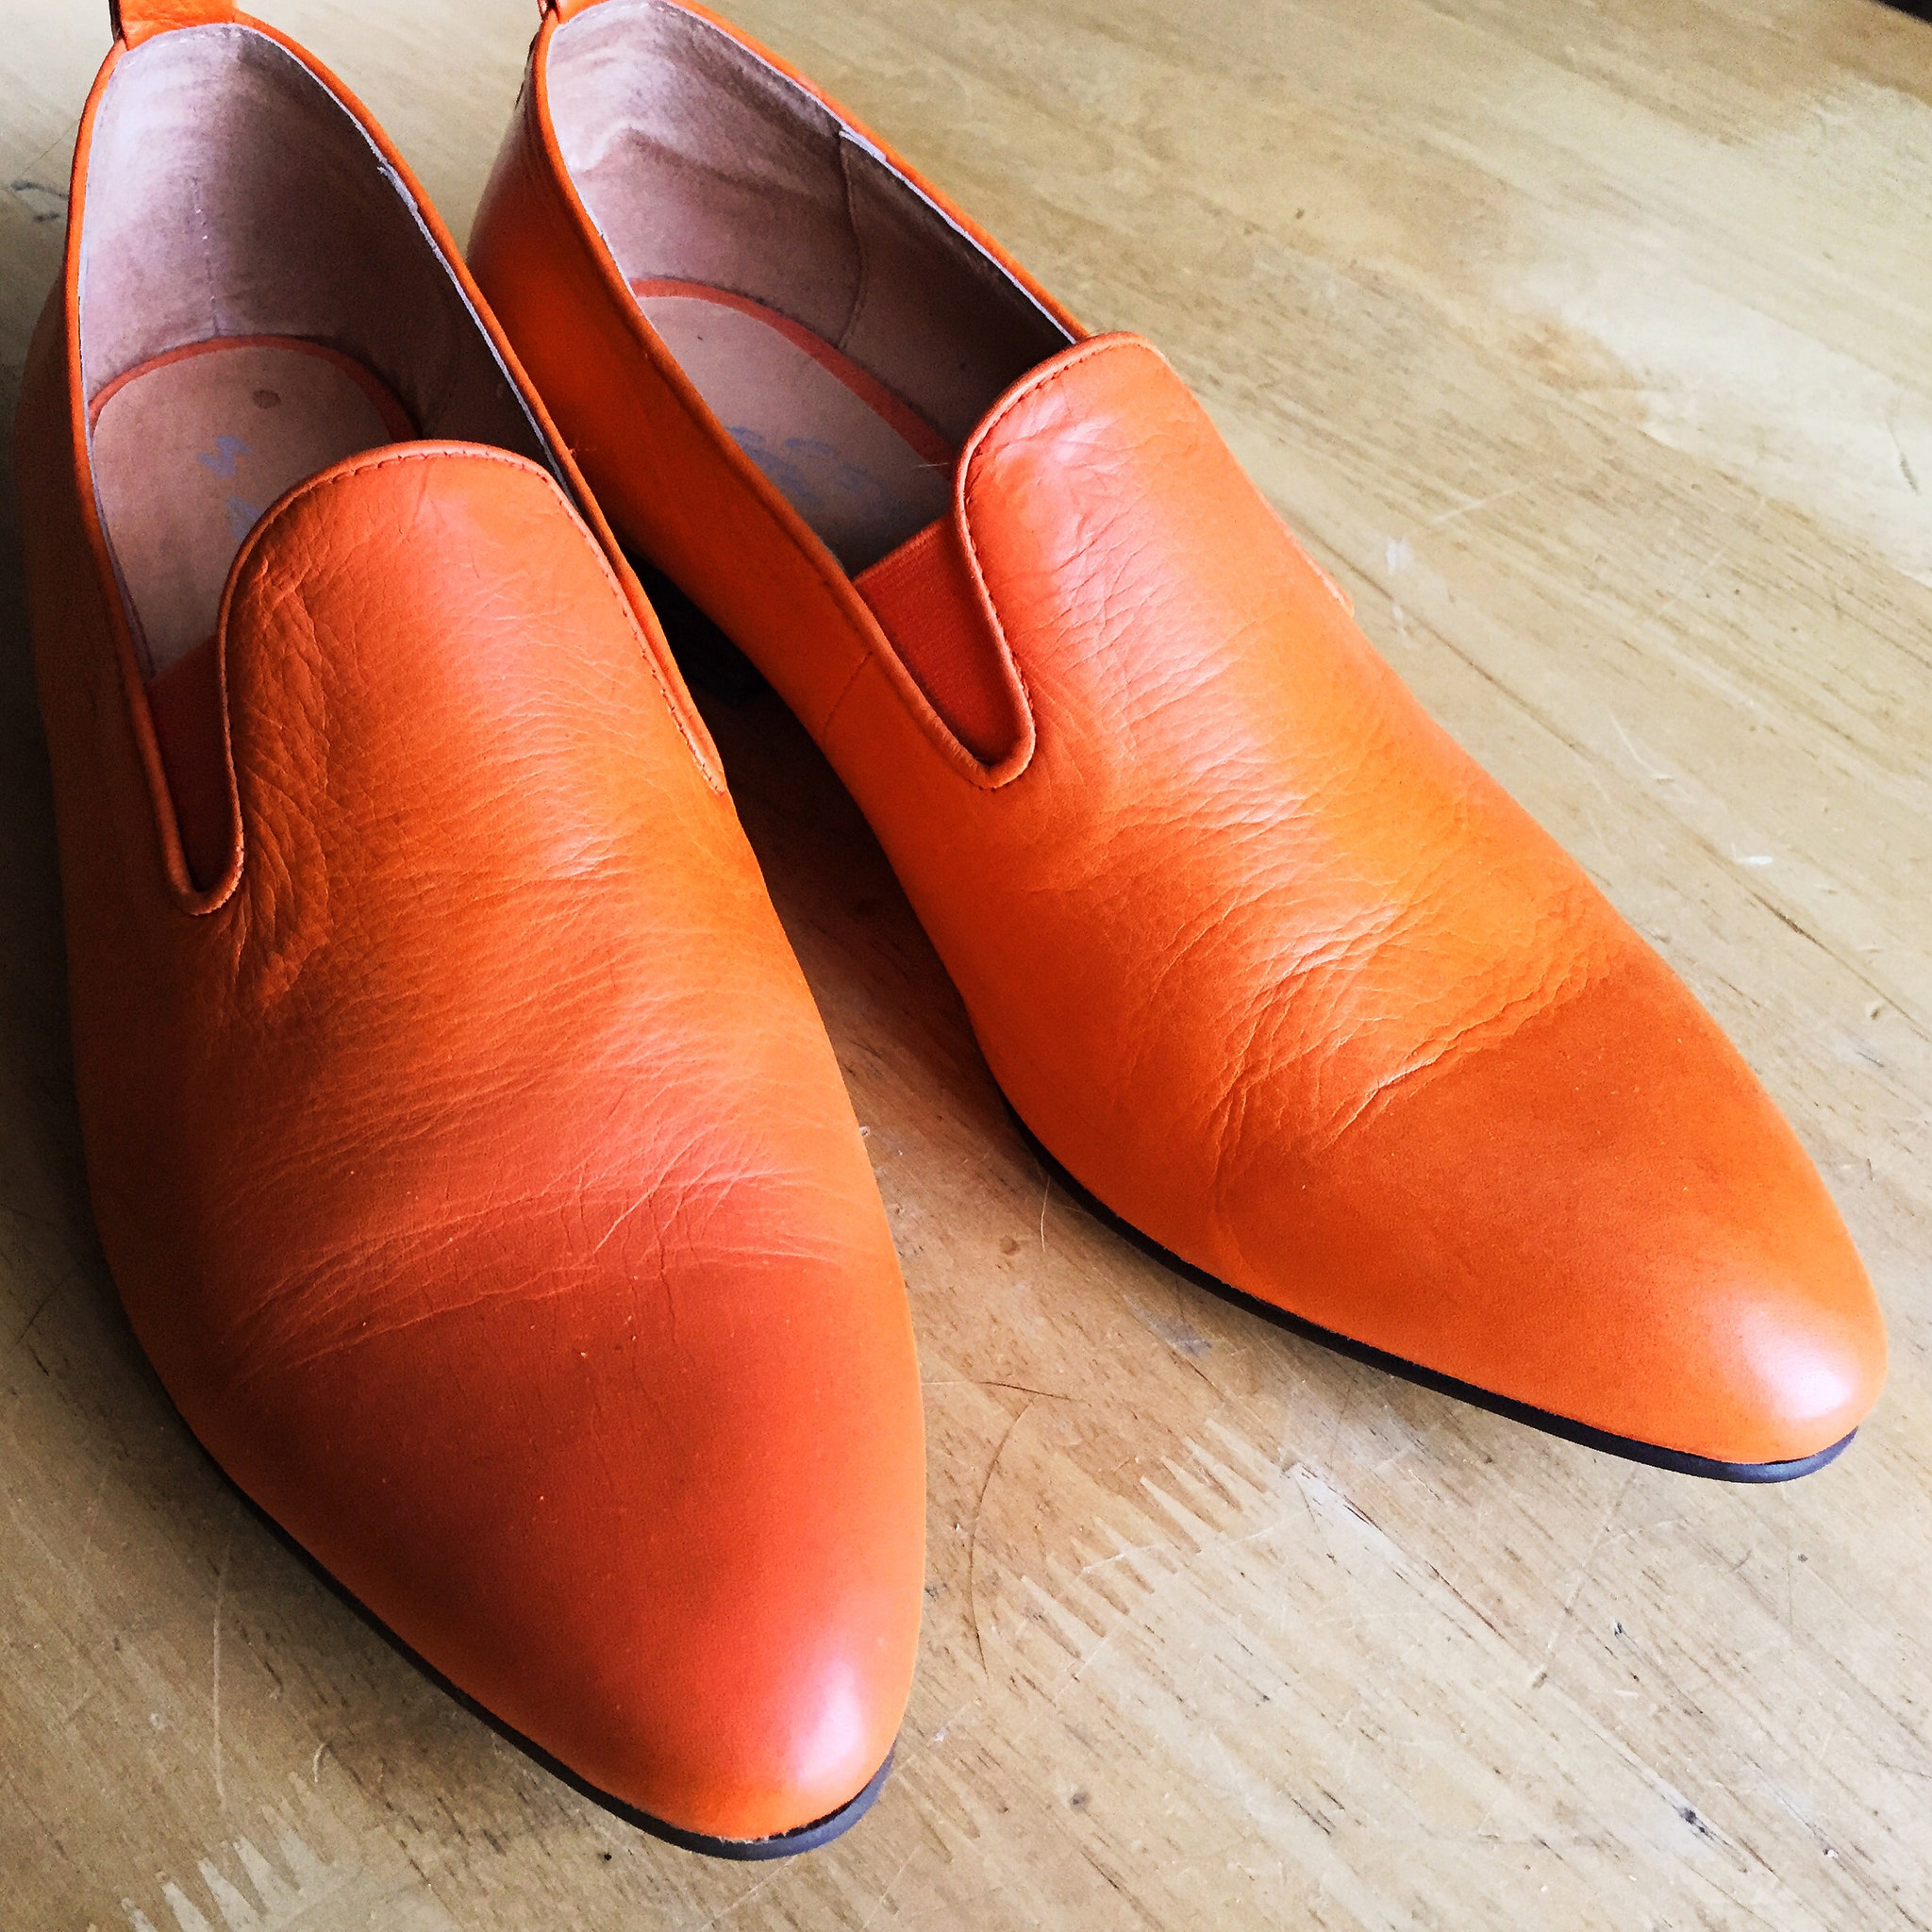 a pair of orange leather ESH by Estée Isman slip-on shoes